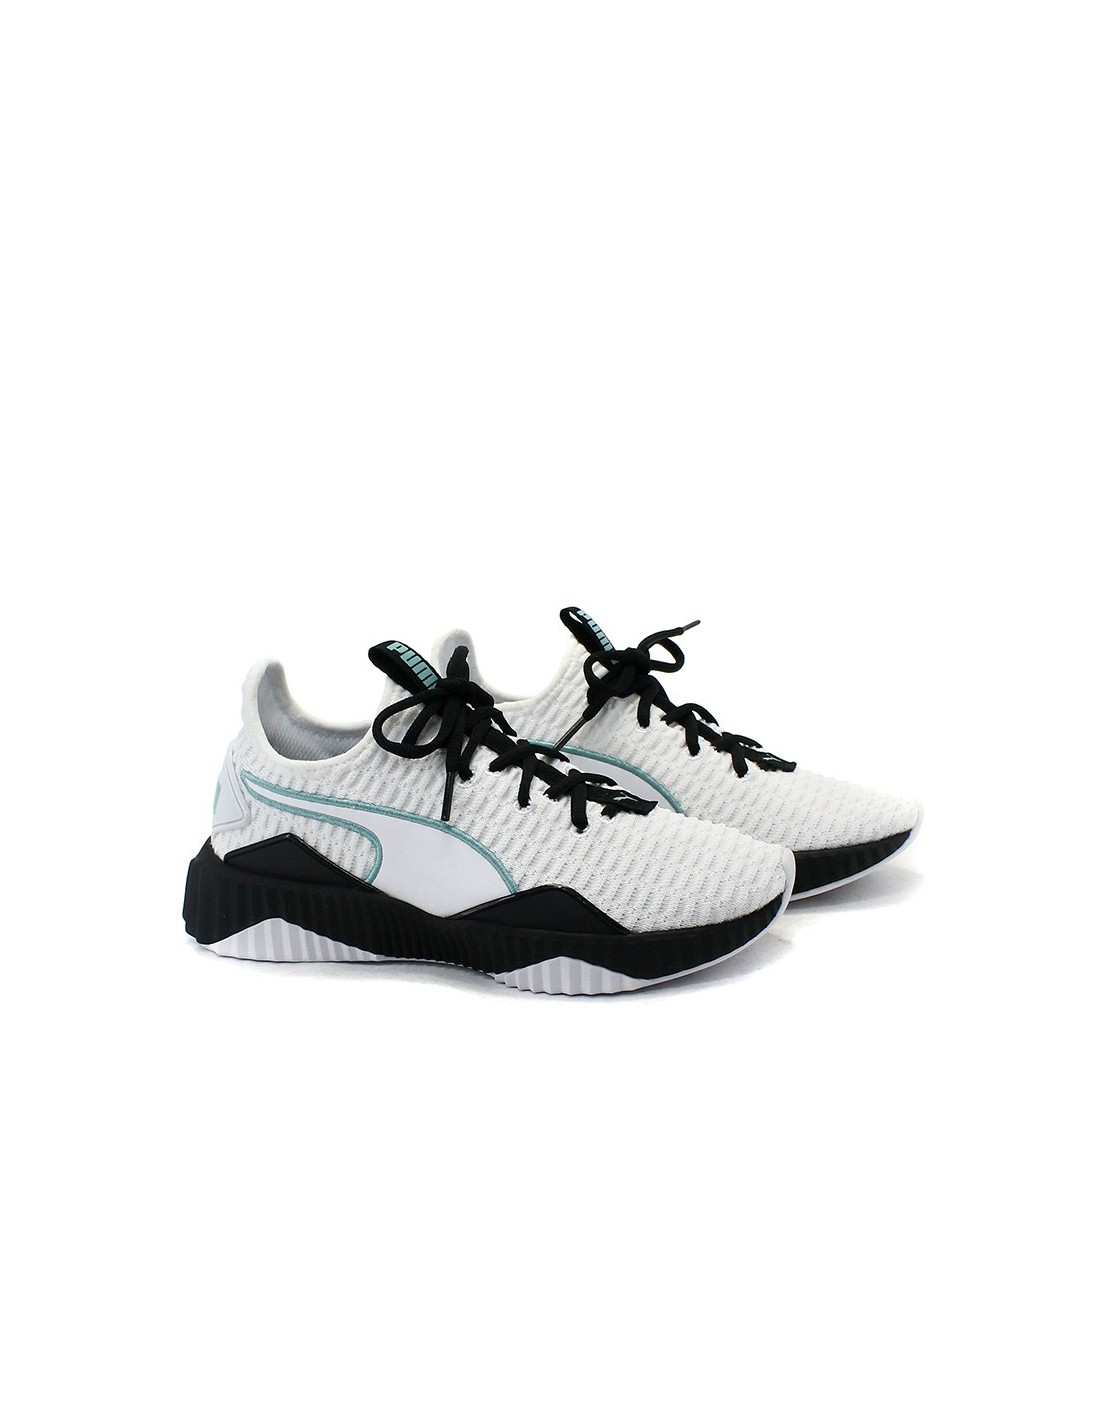 f3aeb06d07eb New Puma sneakers and shoes x Selena Gomez 19094901 DEFY Wn s online